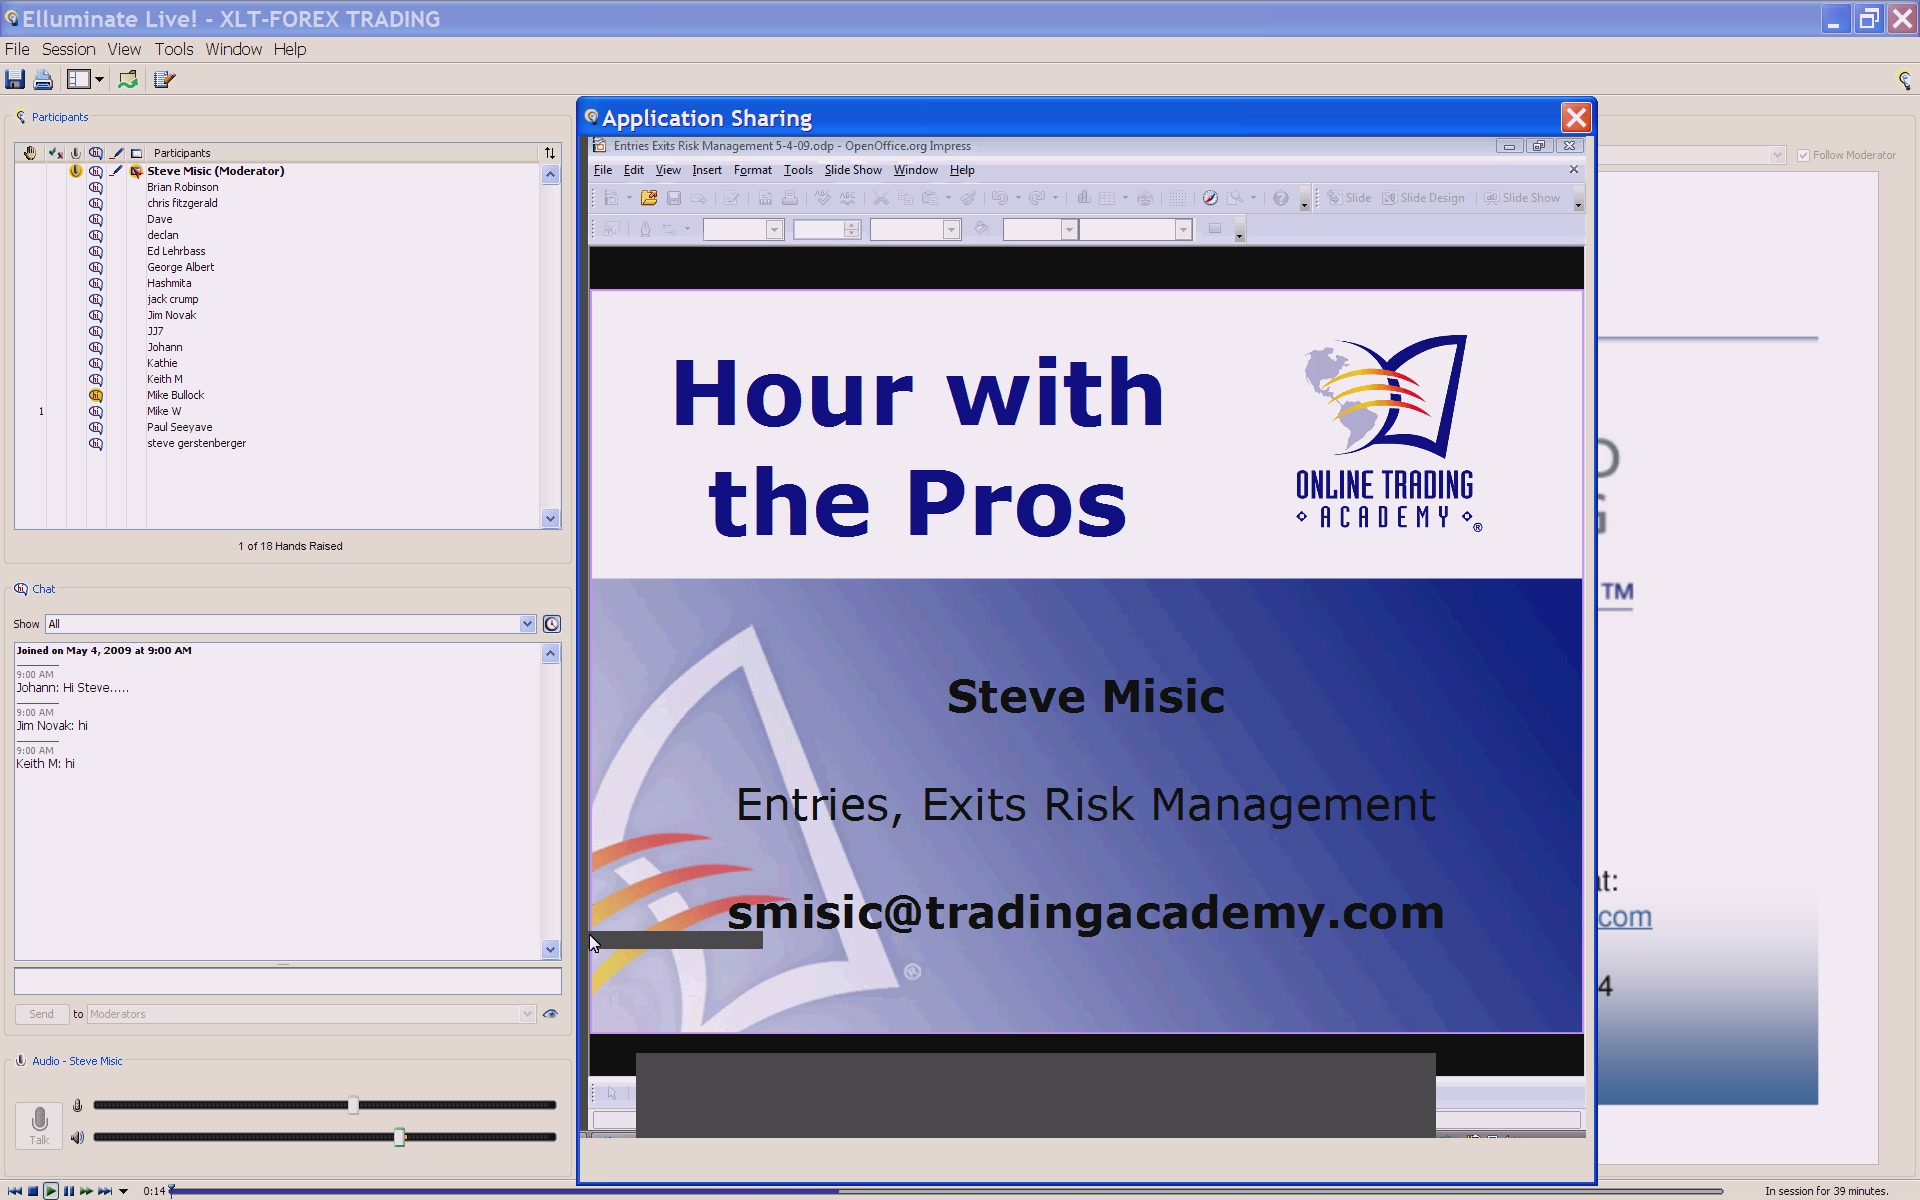 Extended learning track xlt forex trading course